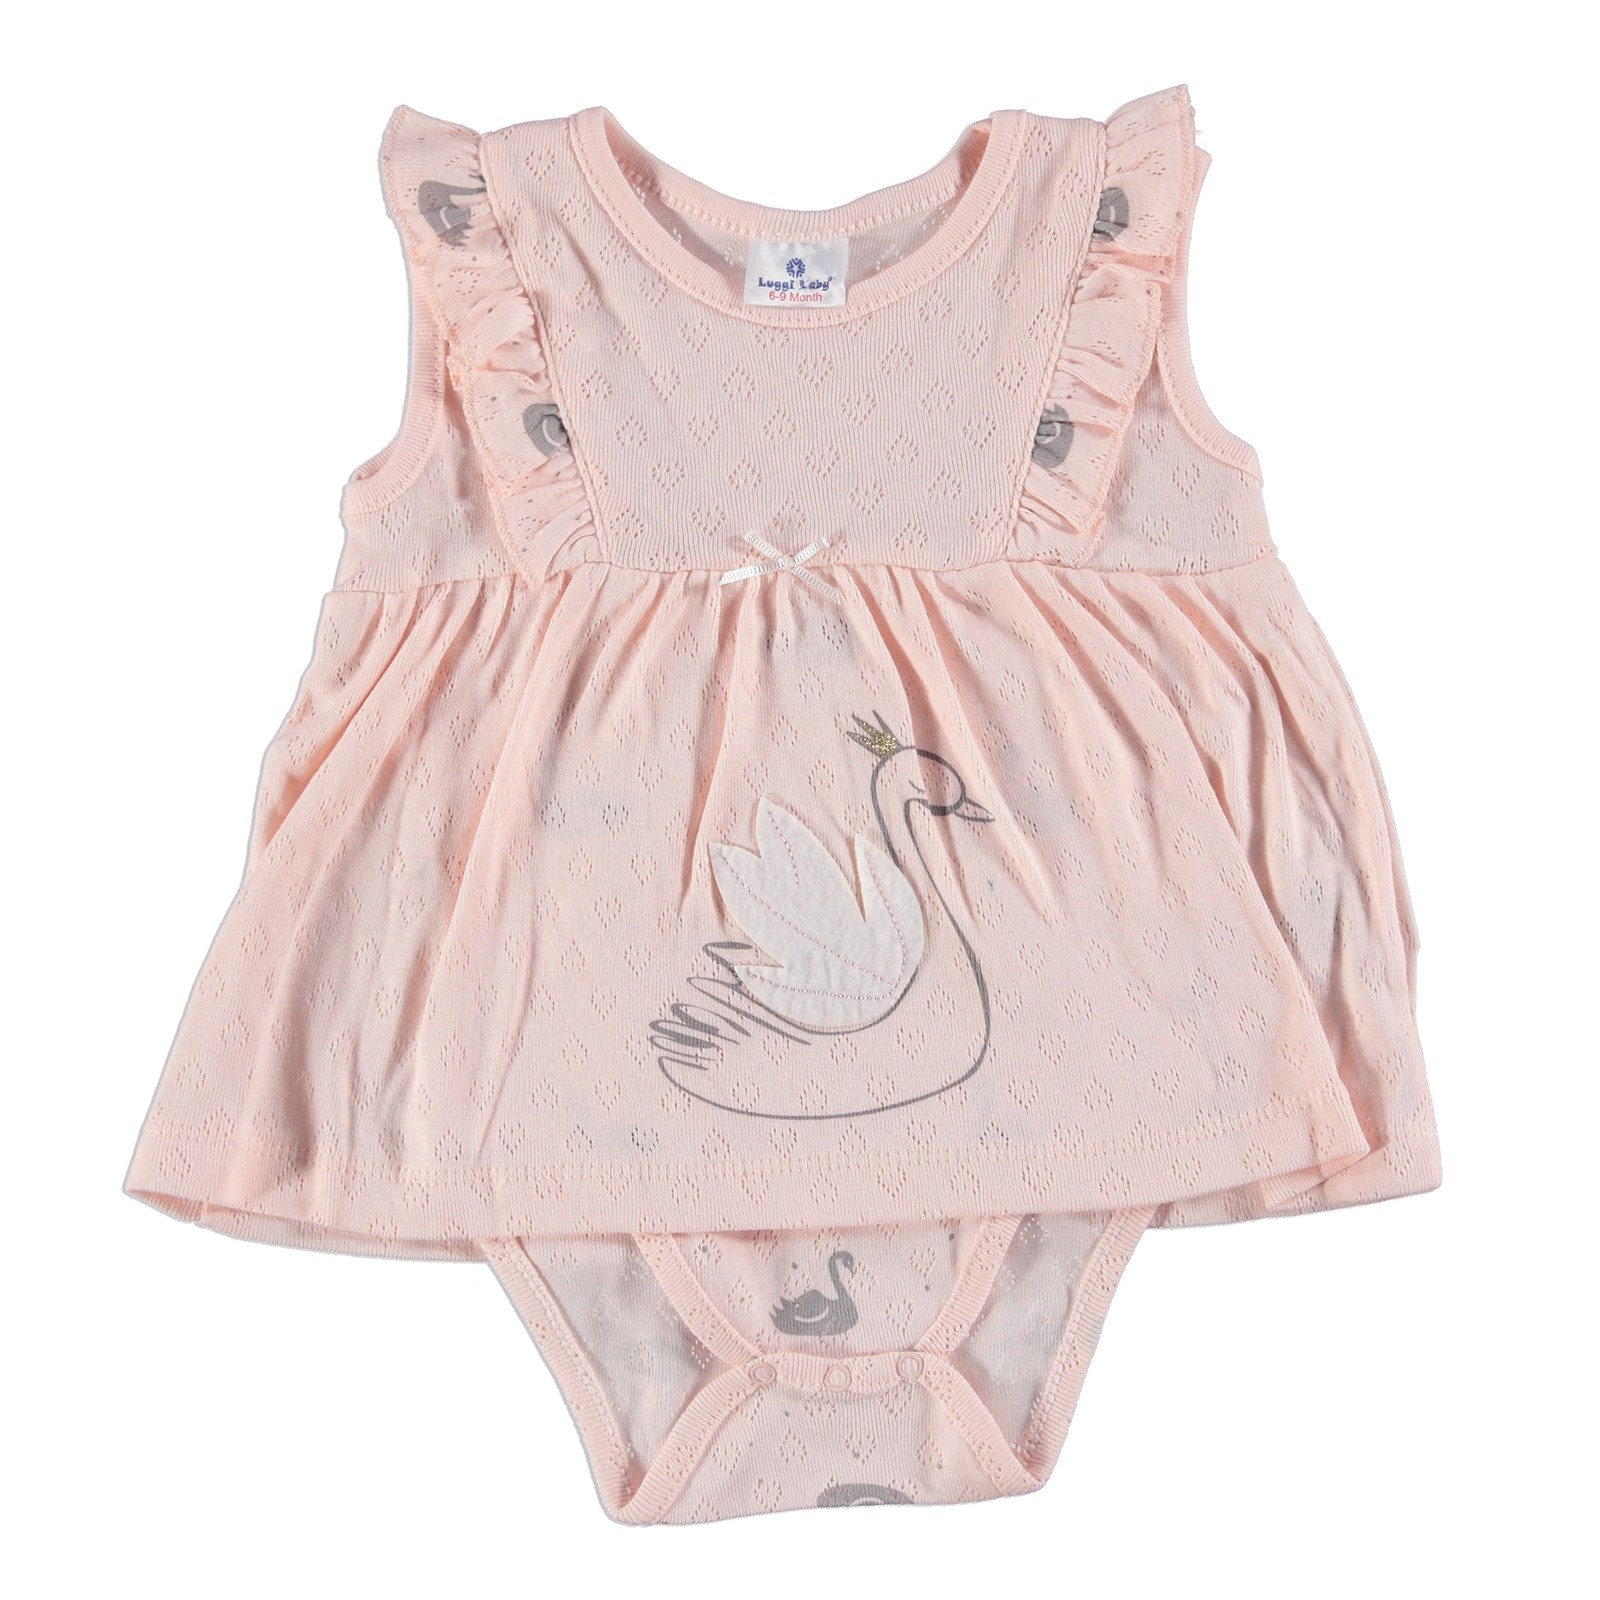 Ebebek Luggi Swan Baby Girl Ruffle Detail Sleeveless Dress Bodysuit